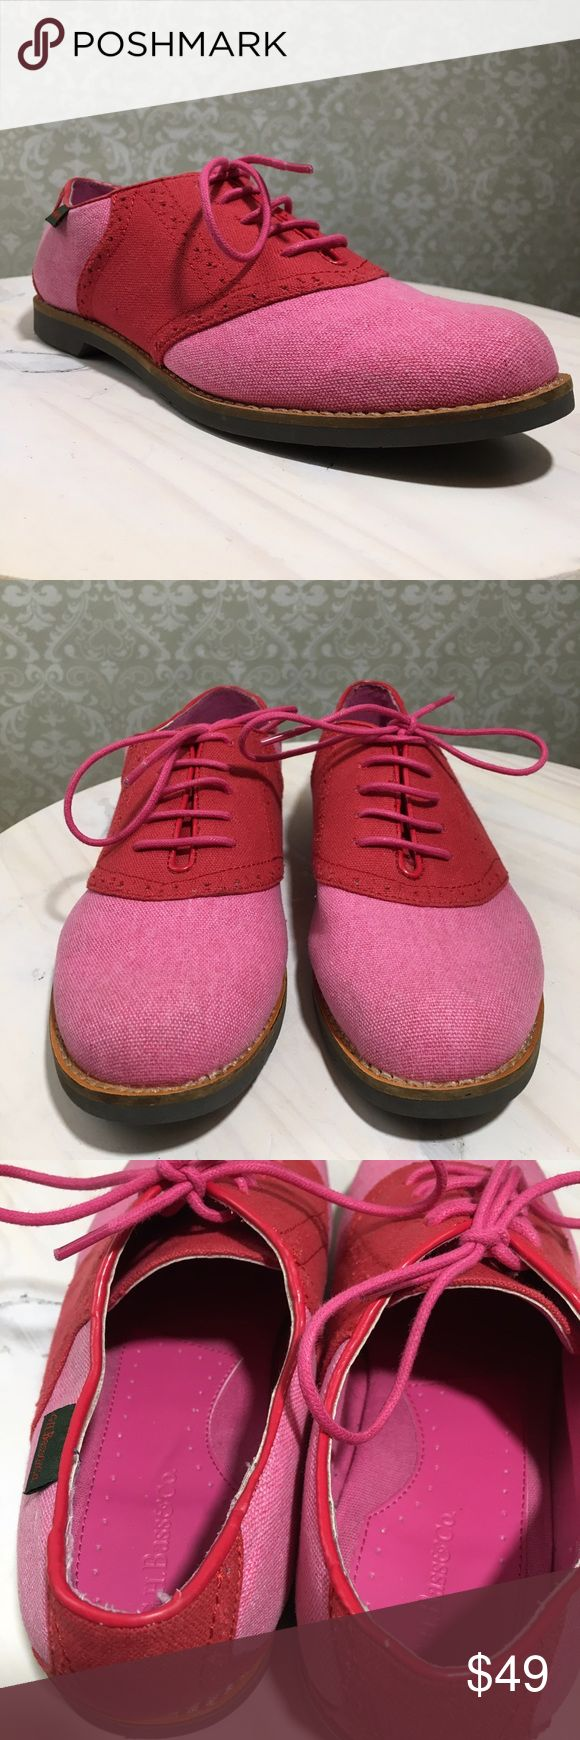 G.H. BASS 8 Elizabeth Saddle Oxford Pink Lace Up G.H. BASS & CO  Women Size 8  Elizabeth  Saddle Oxford  Pink/Pink  Lace Up  EUC  Overall excellent condition. Some light discoloration on fabric from previous wear.   No box Bass Shoes Flats & Loafers